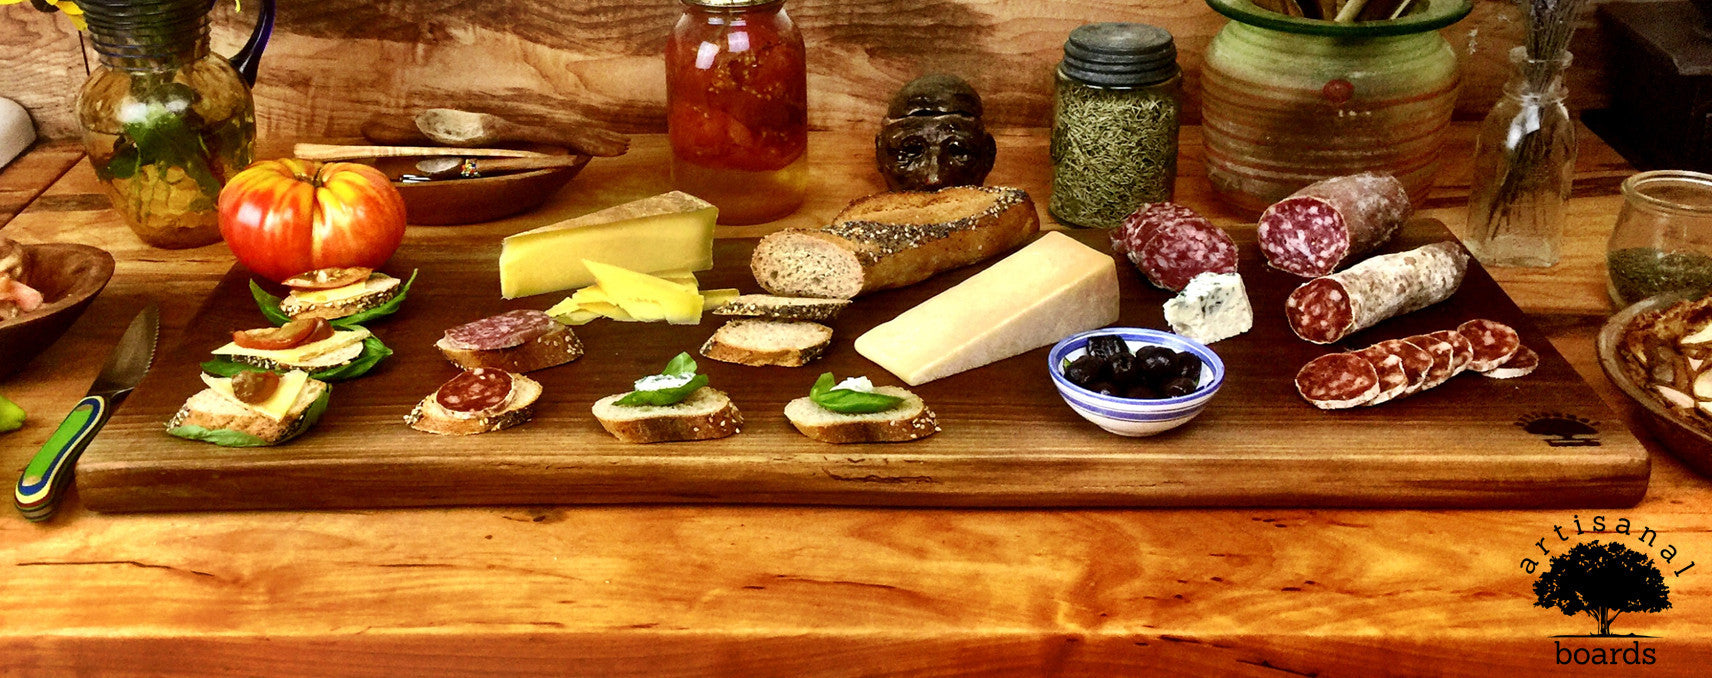 Artisan Cutting Boards